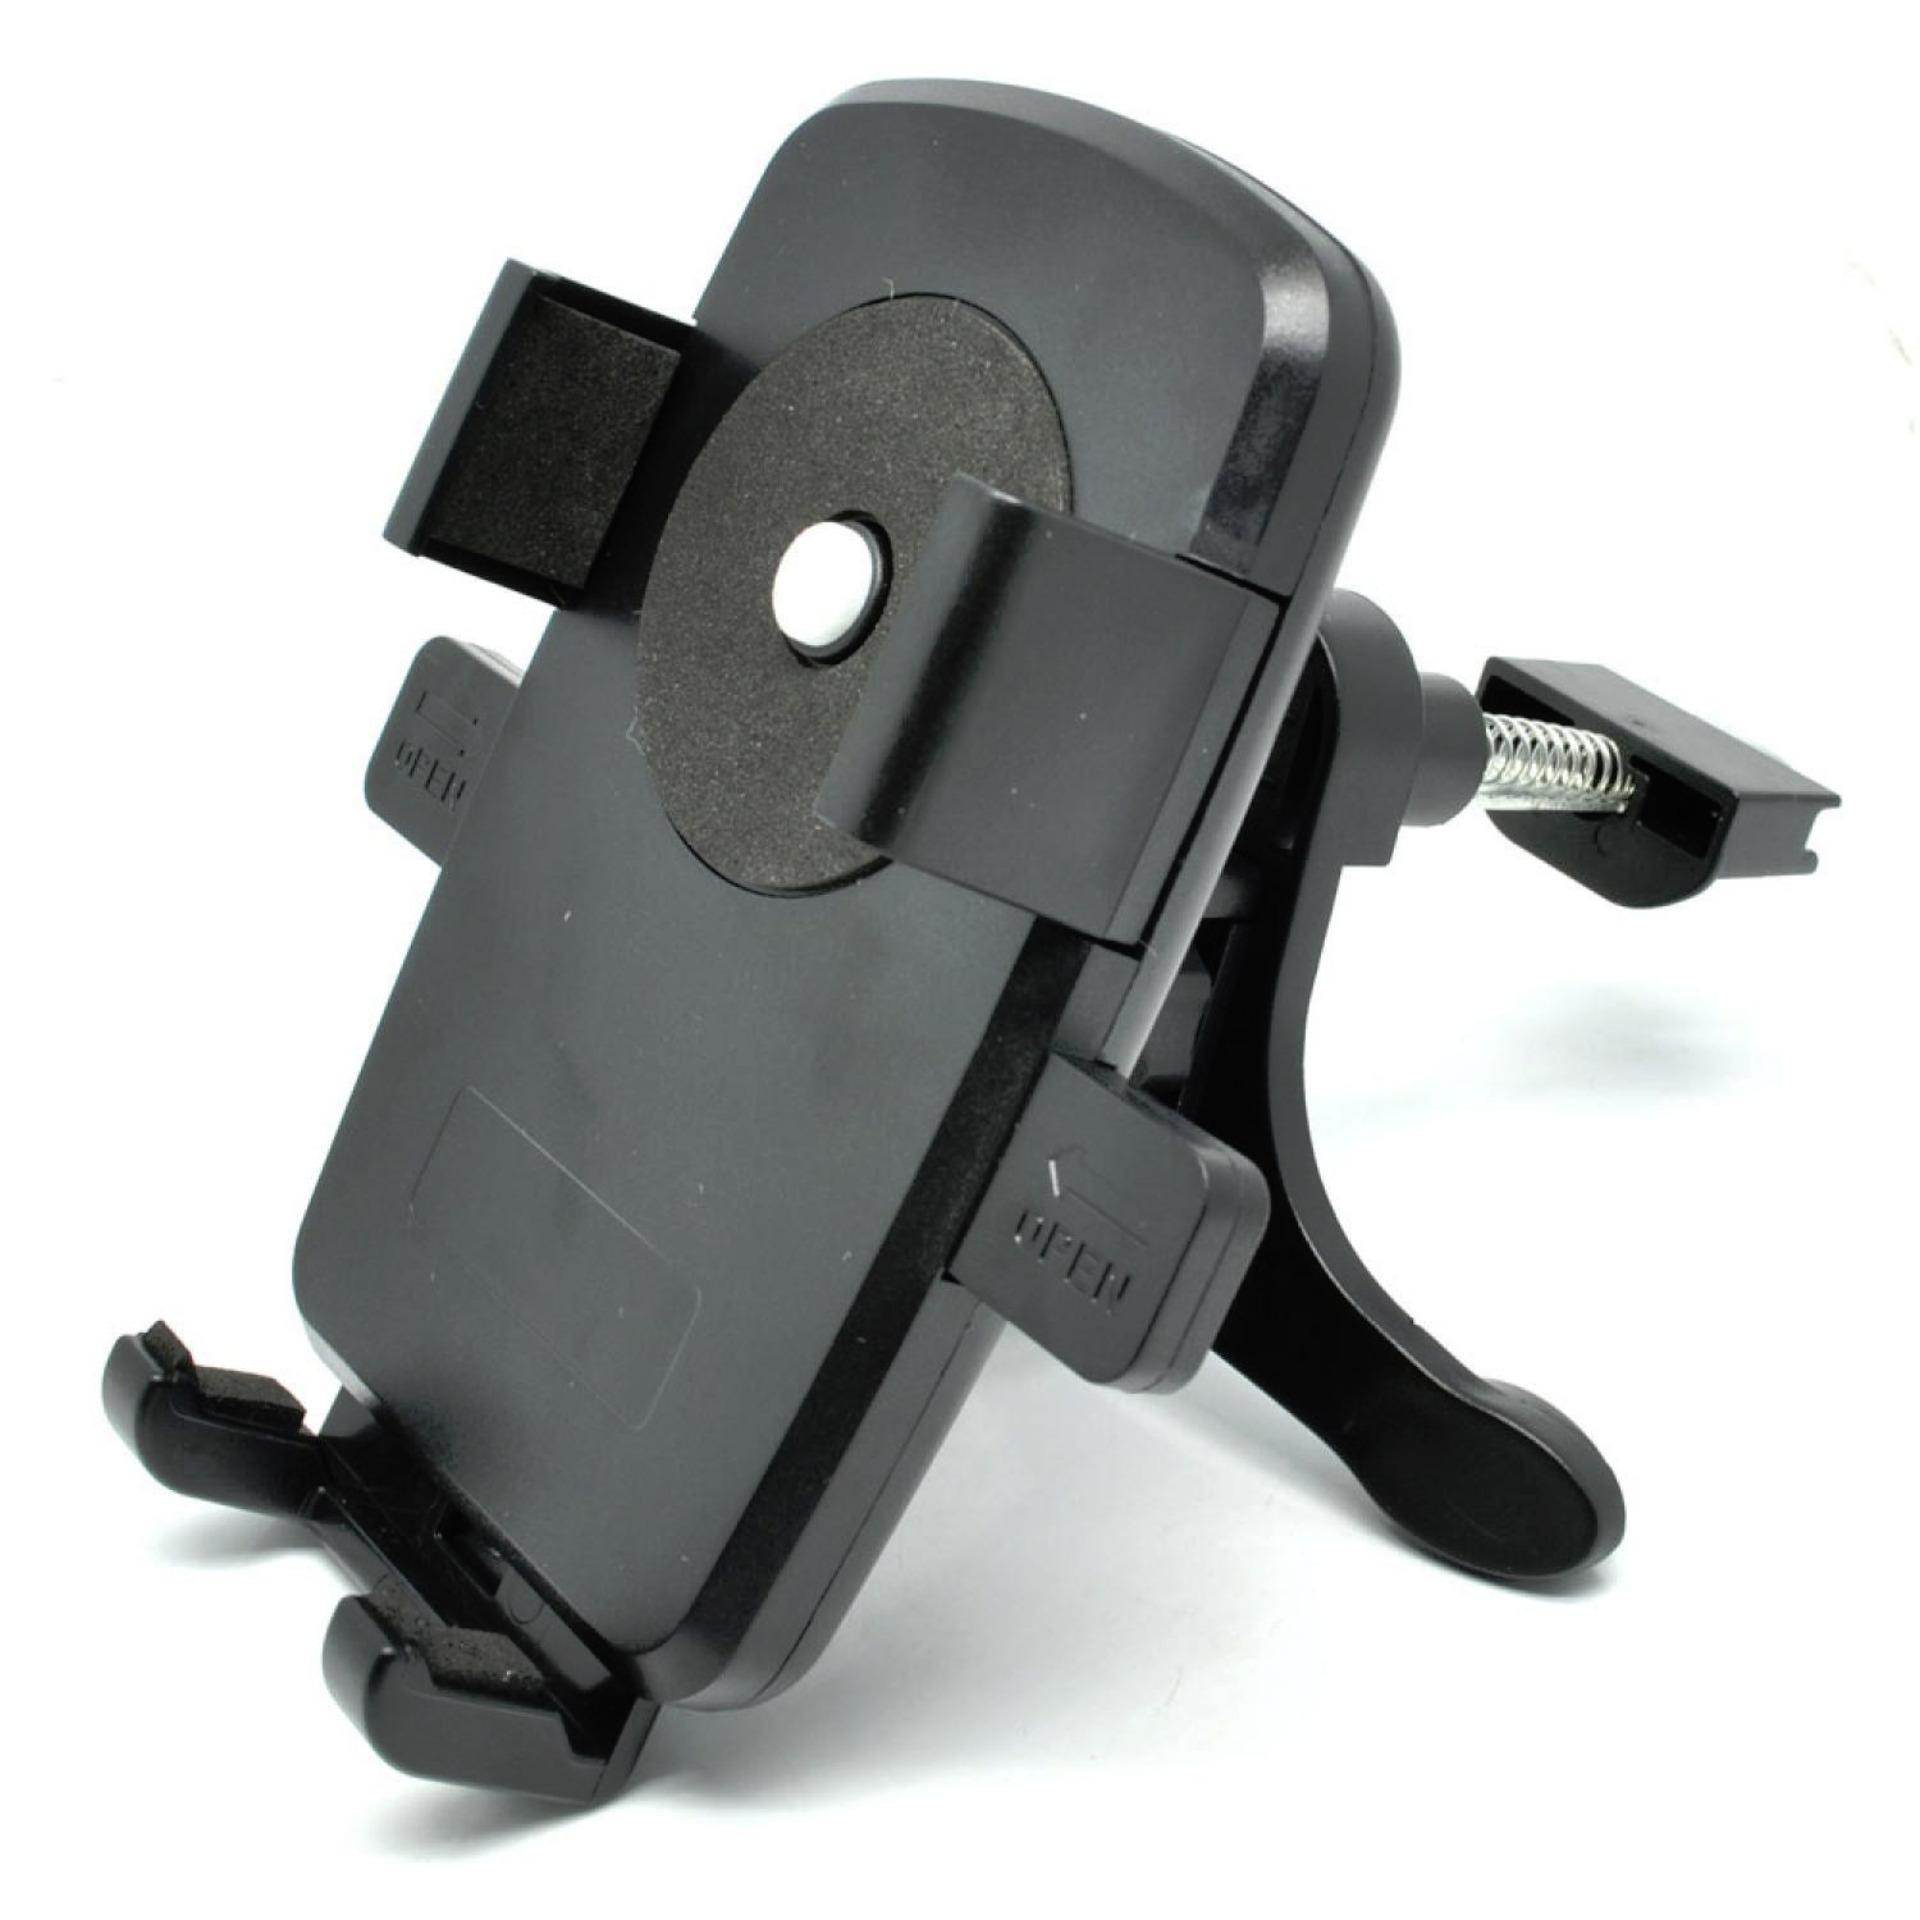 Universal Mobile Phone Car Holder Air Vent Promo Beli 1 Gratis 1